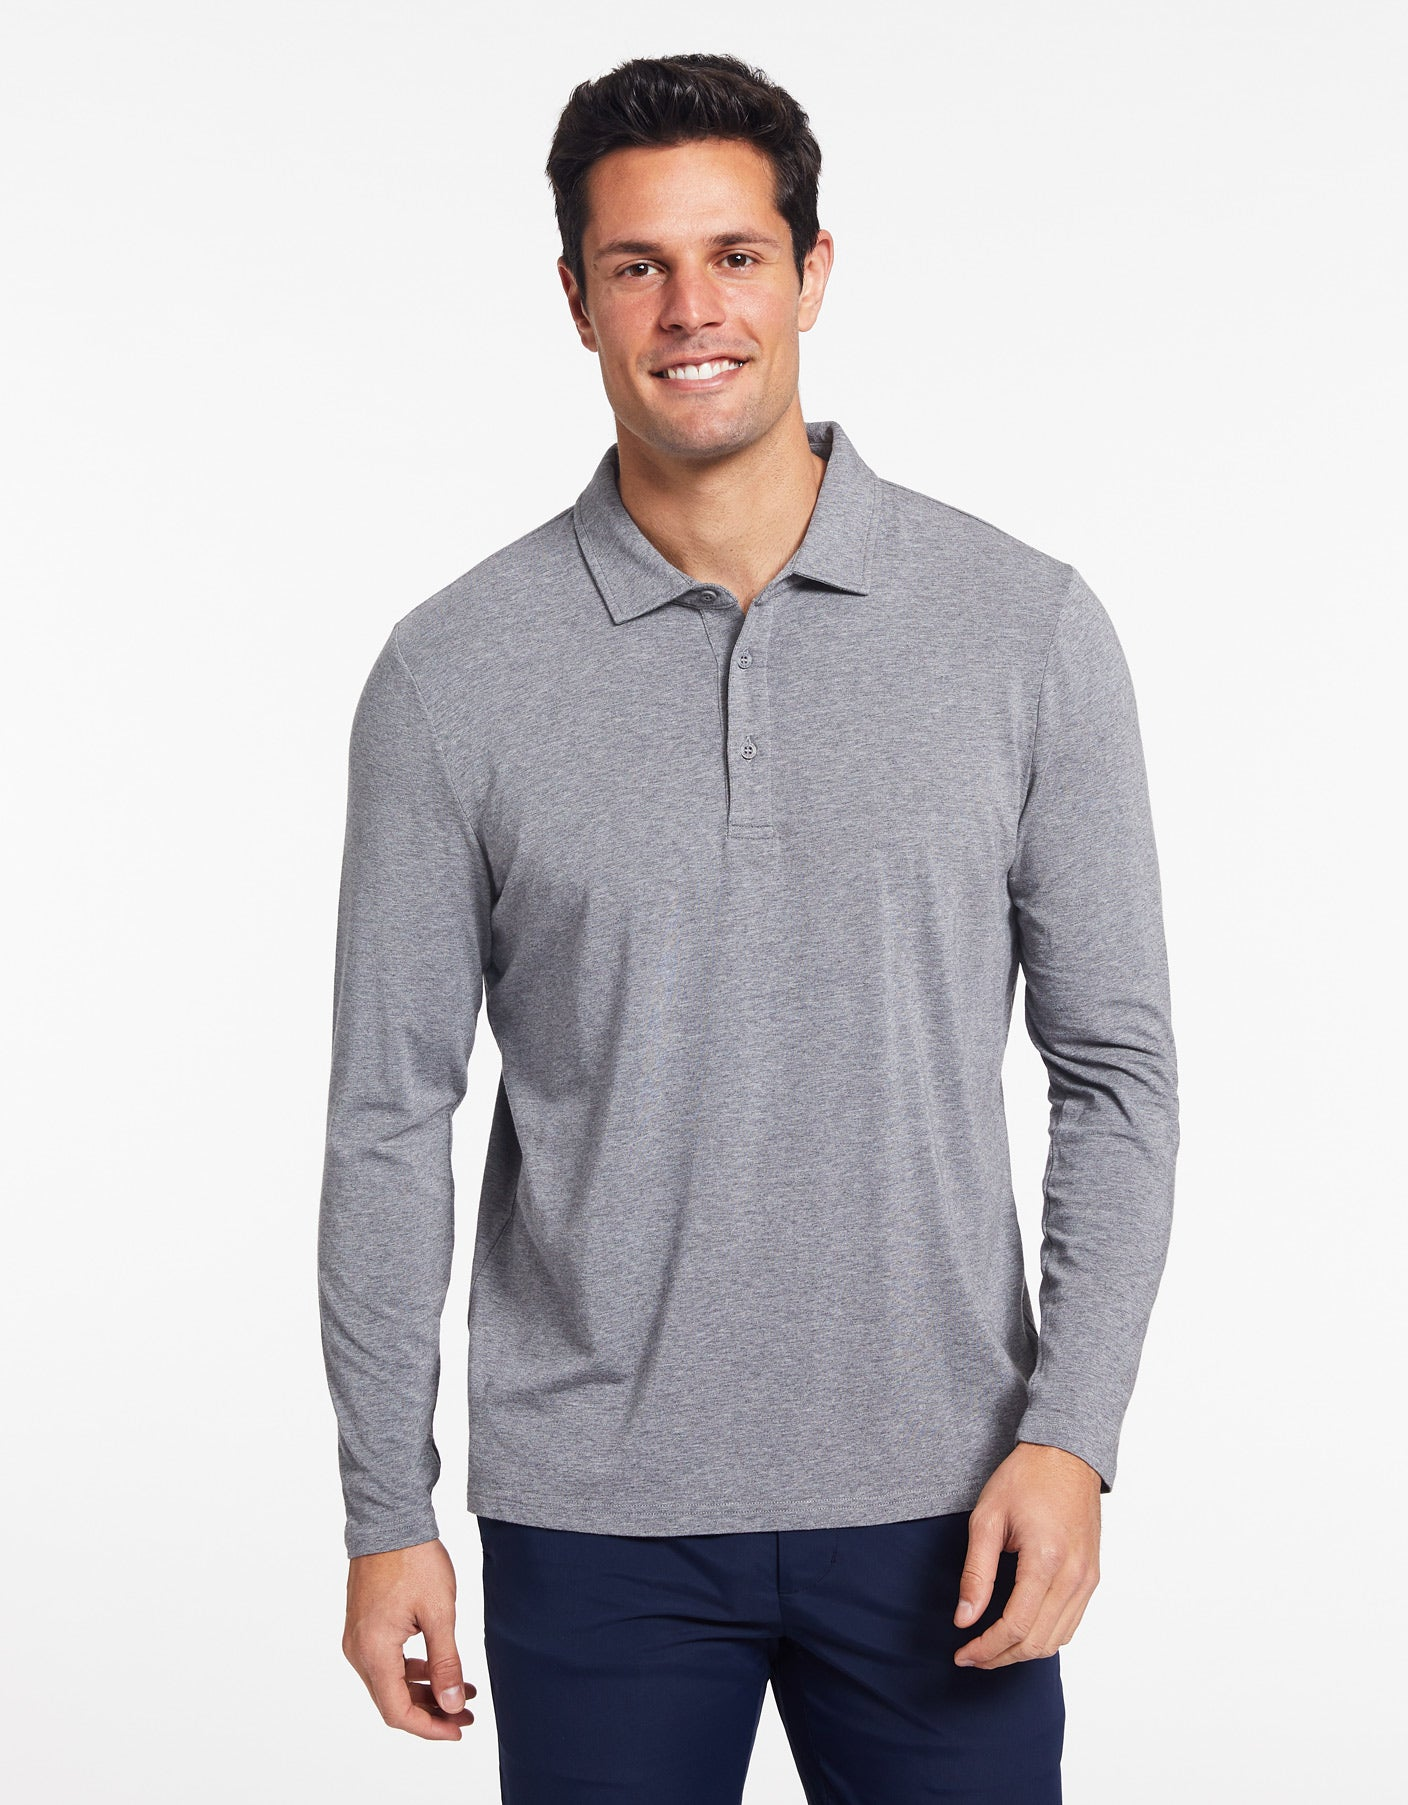 Solbari Sun Protection Men's UPF50+ Long Sleeve Polo in Dark Grey Marle Sensitive Collection